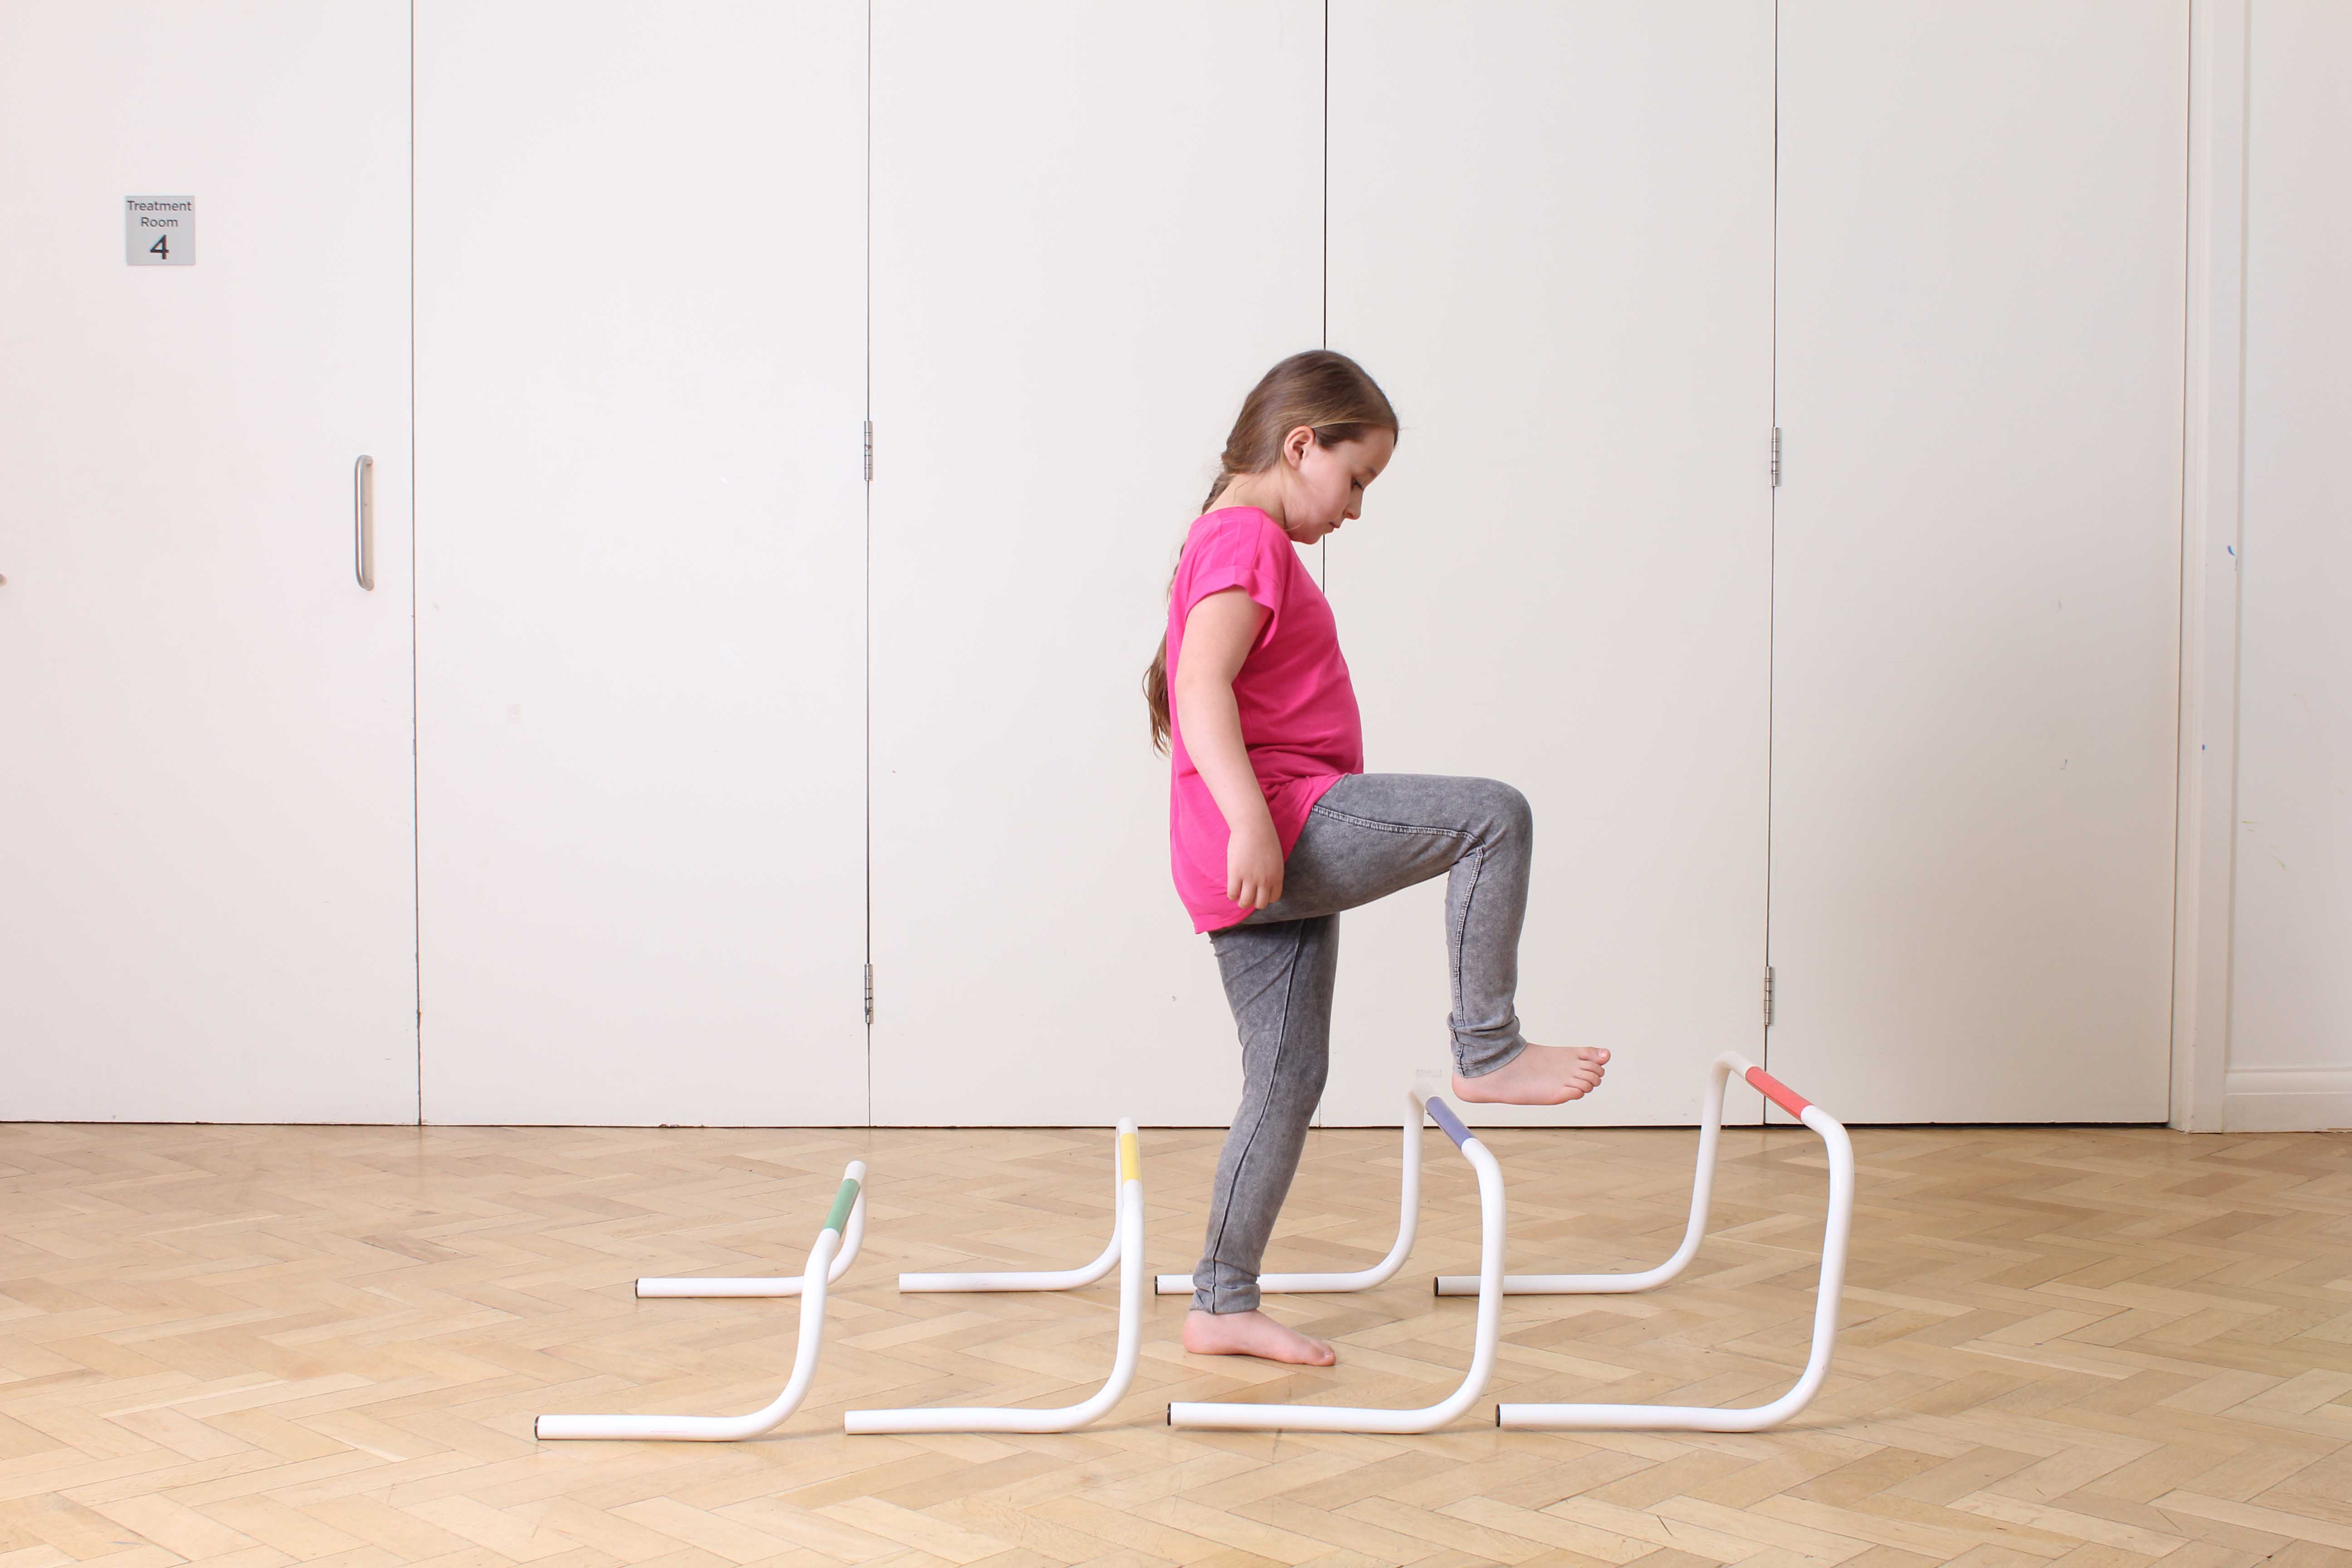 Gait re-education exercises between the parallel bars supervised by a paediatric physiotherapist